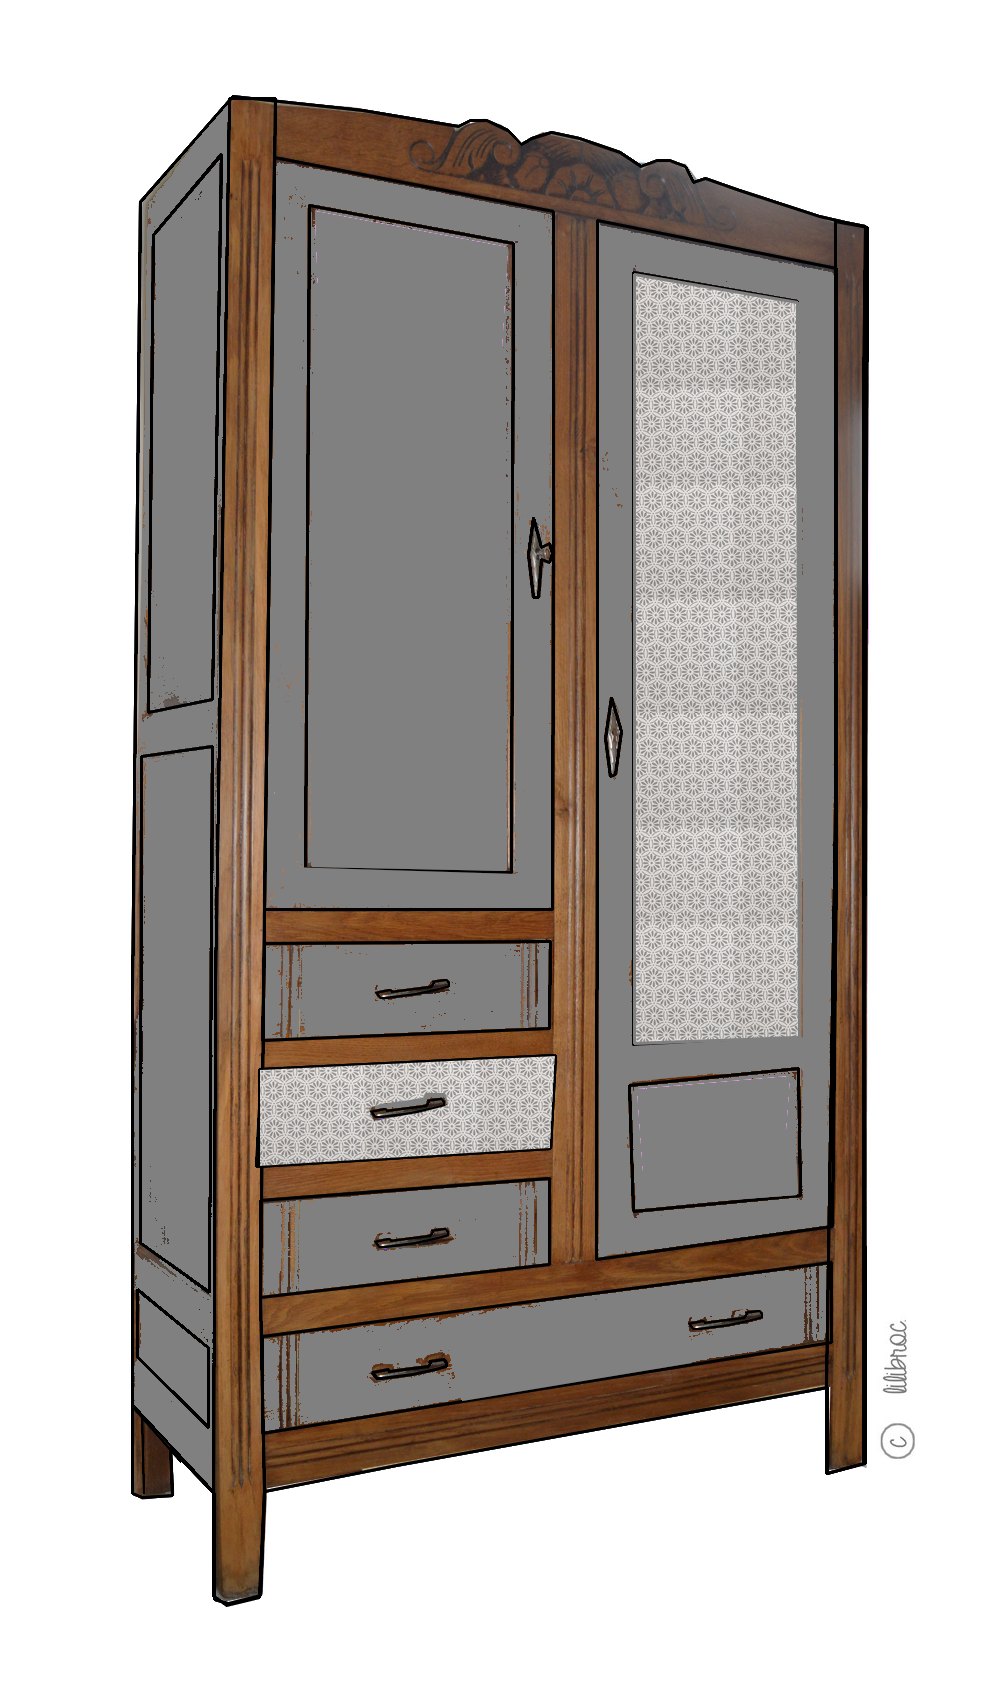 armoire vintage ma lle croquis de relooking lilibroc. Black Bedroom Furniture Sets. Home Design Ideas